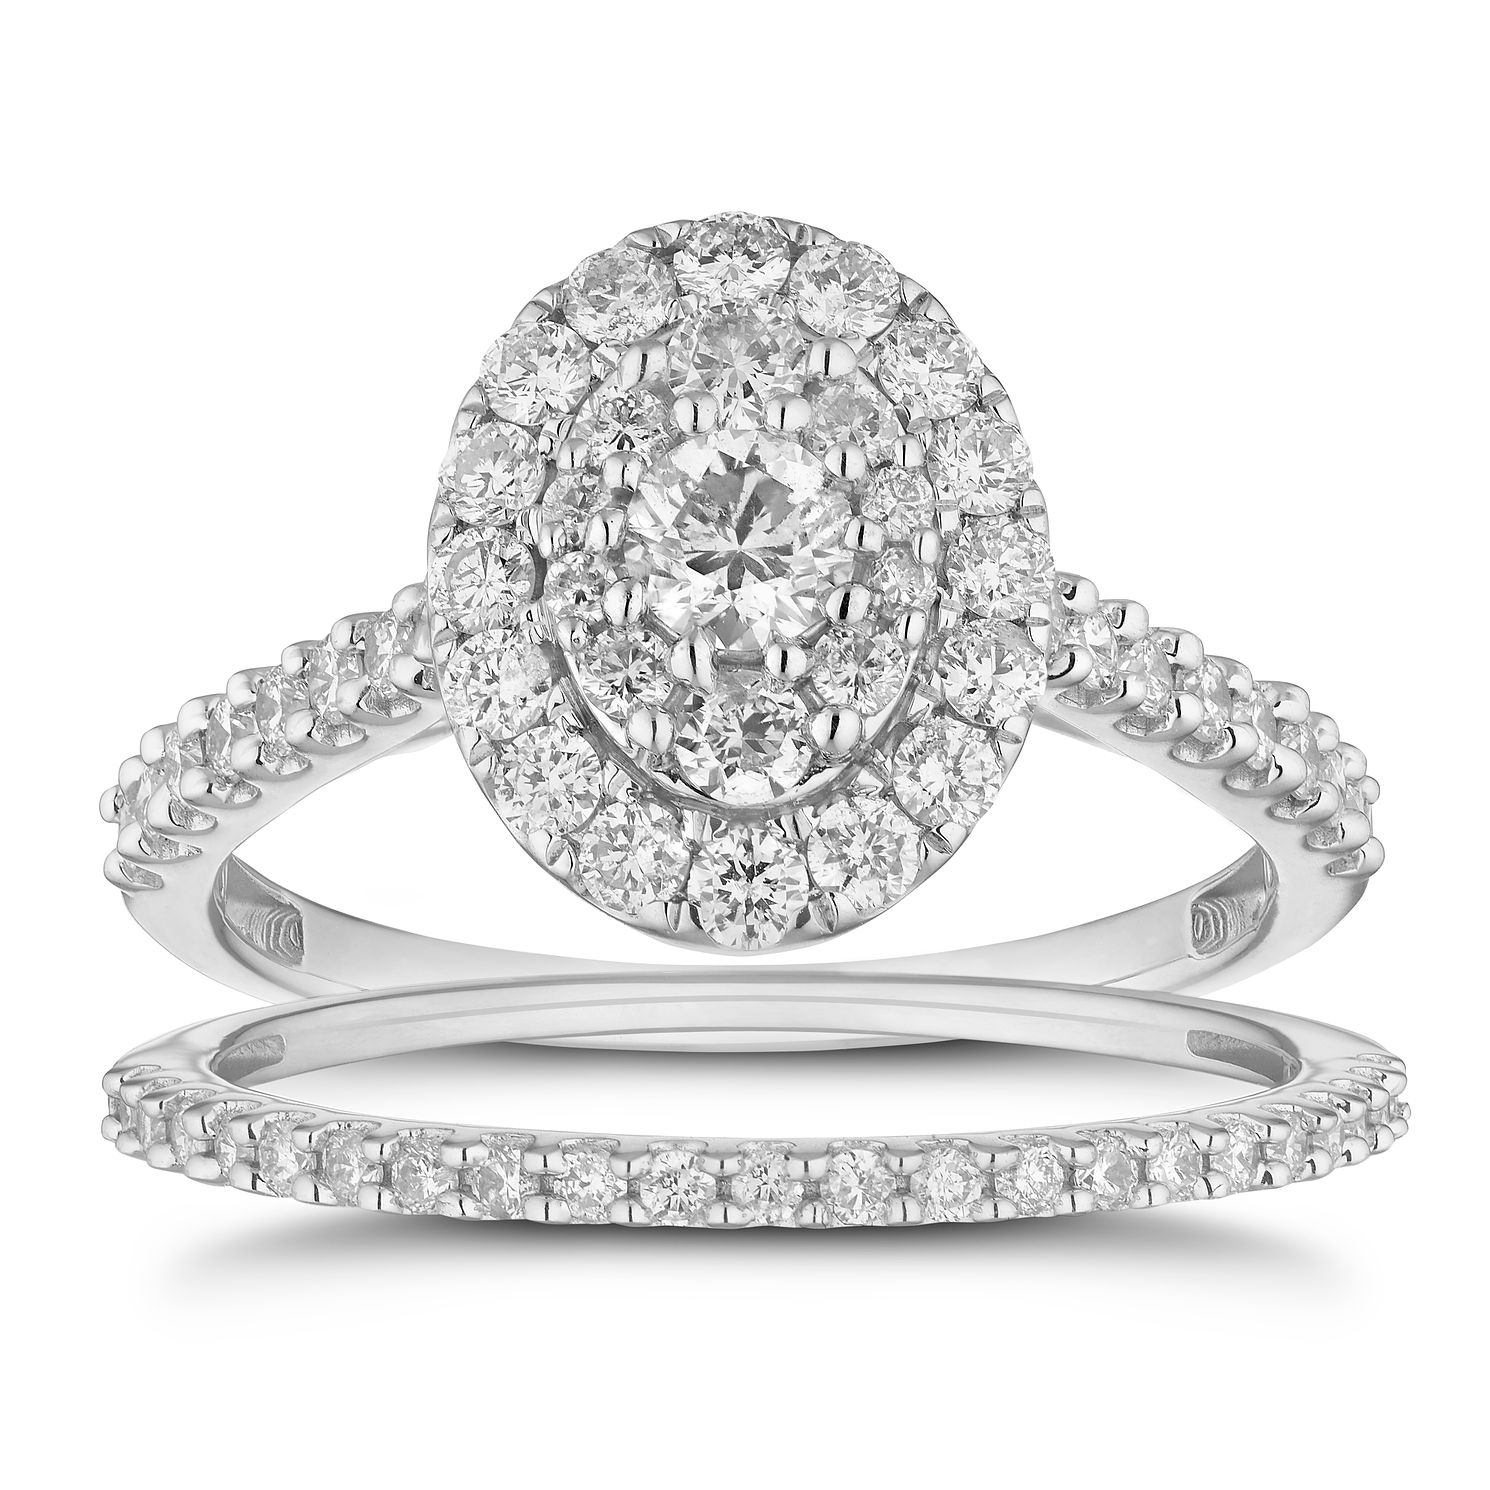 18ct White Gold 1ct Total Diamond Oval Bridal Set - Product number 4887522